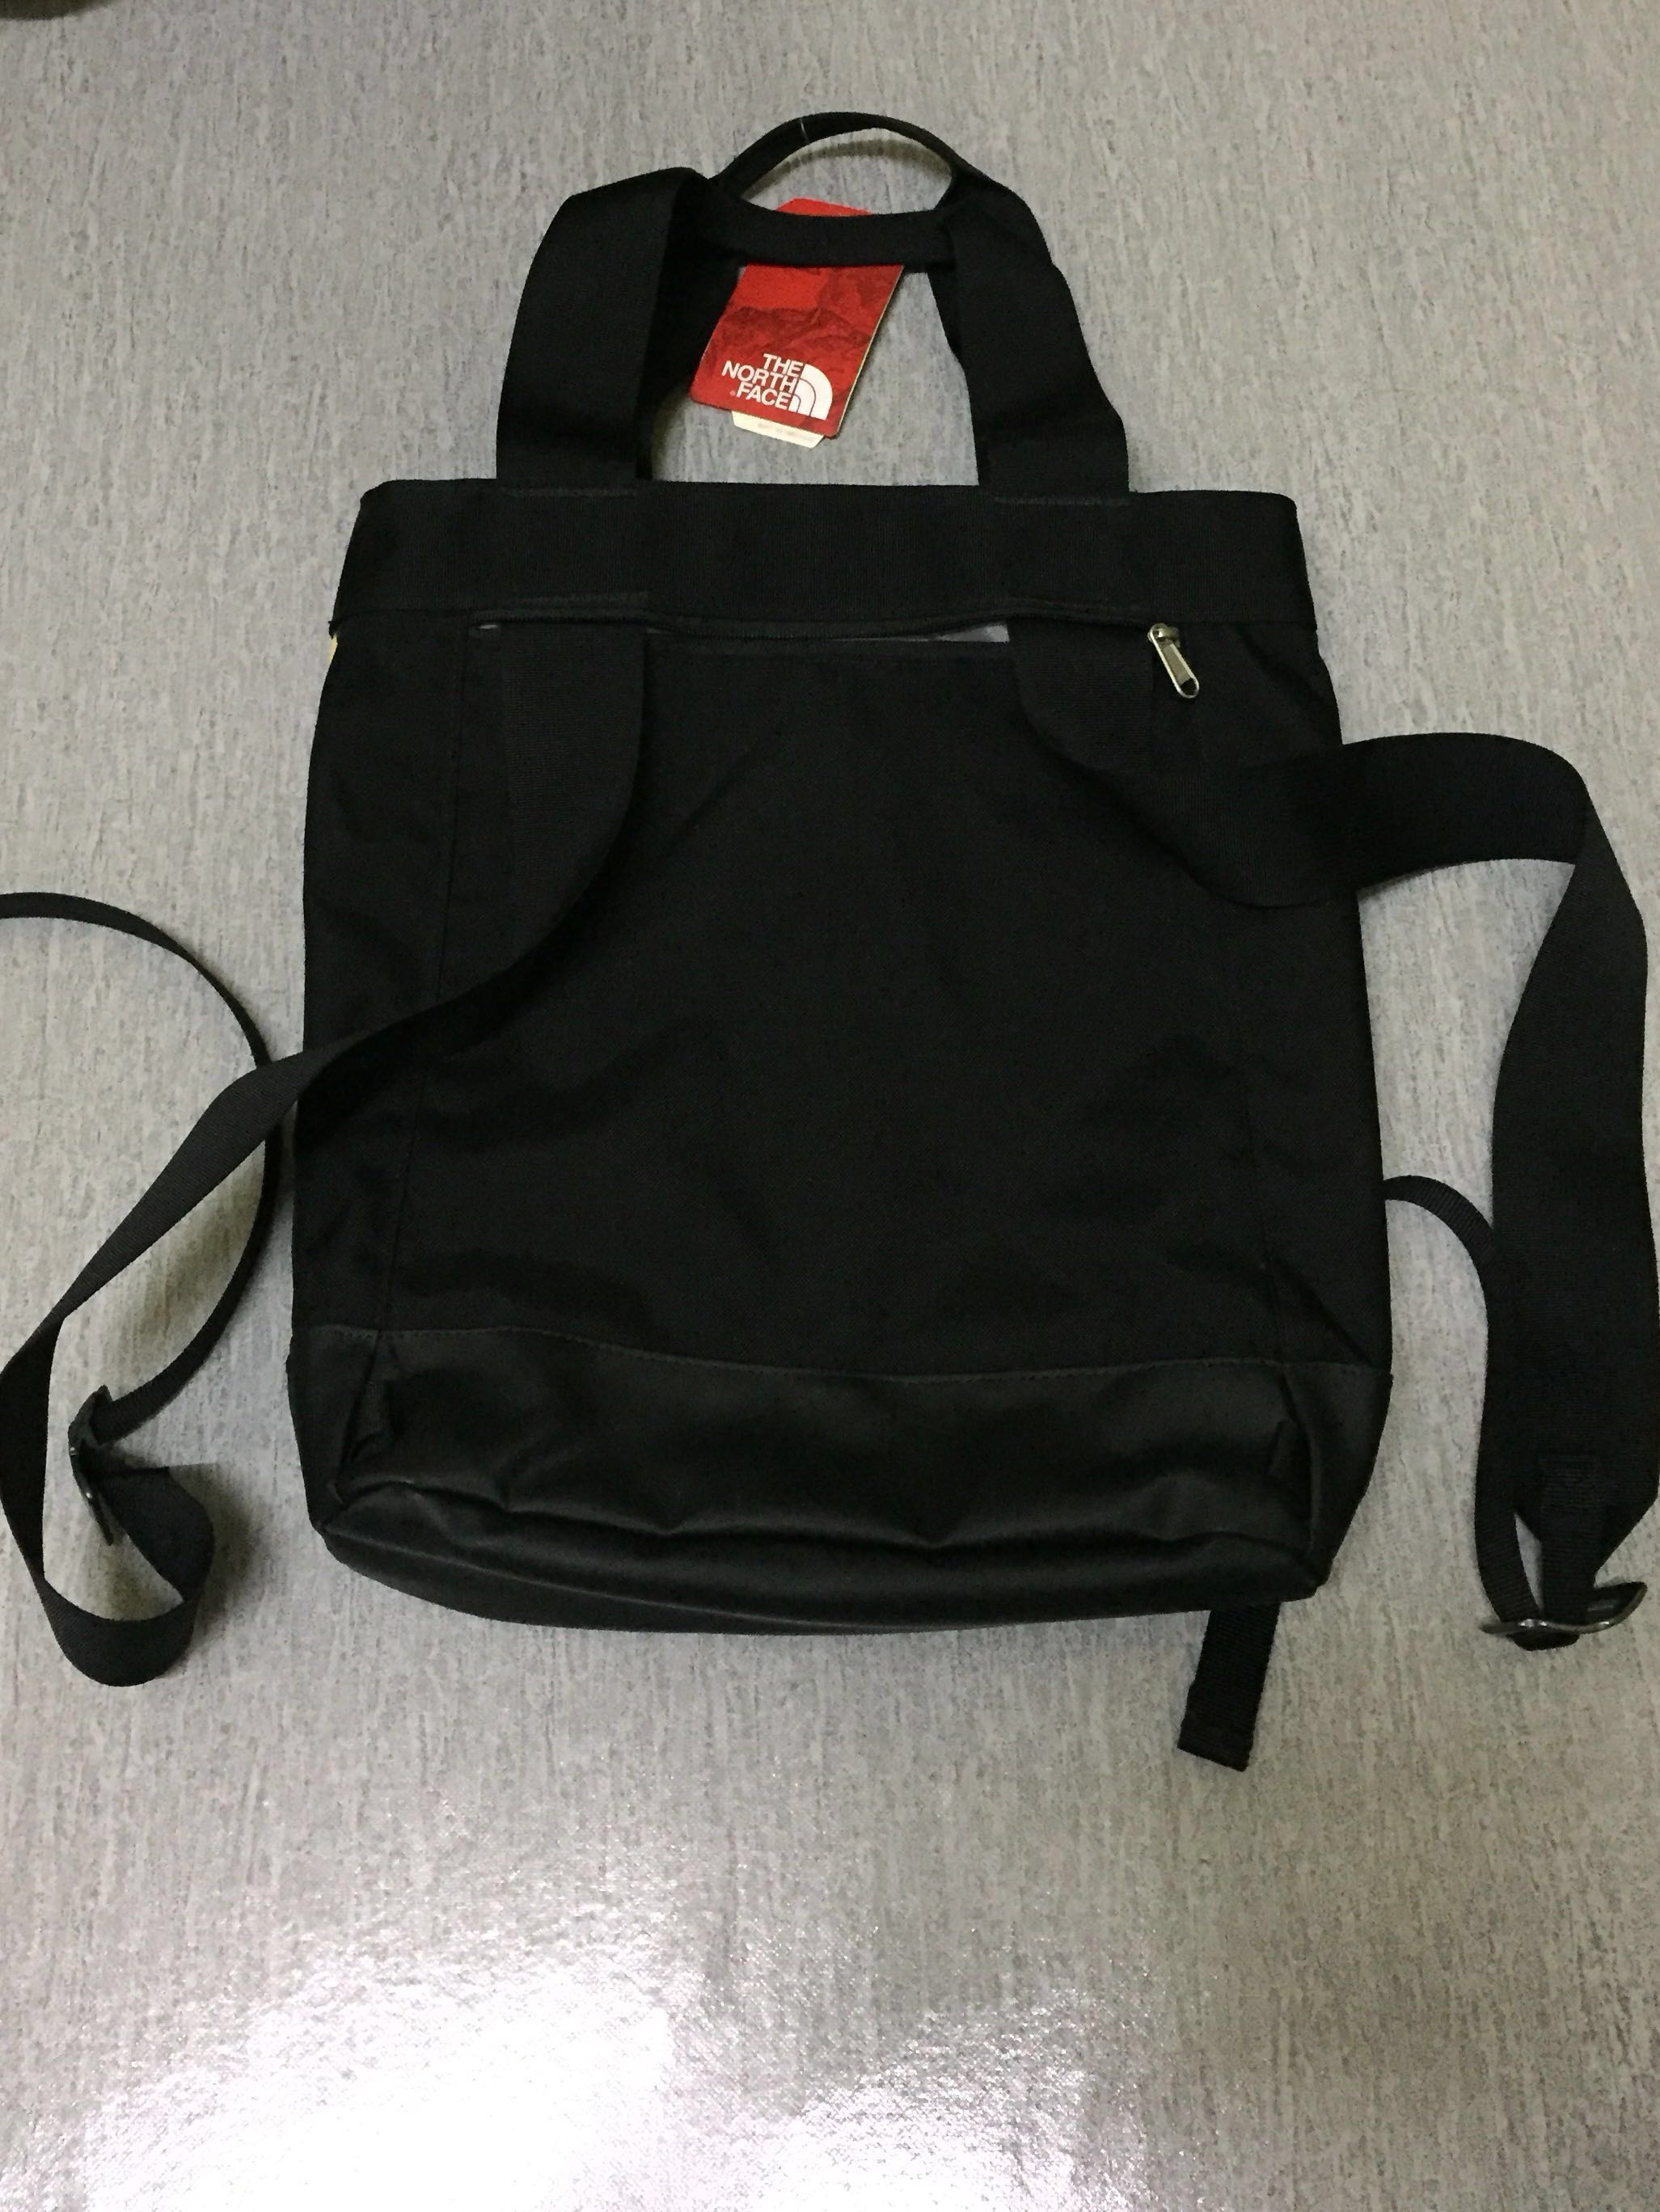 fff62d3b56 NEW The North Face V-Tote Daypack